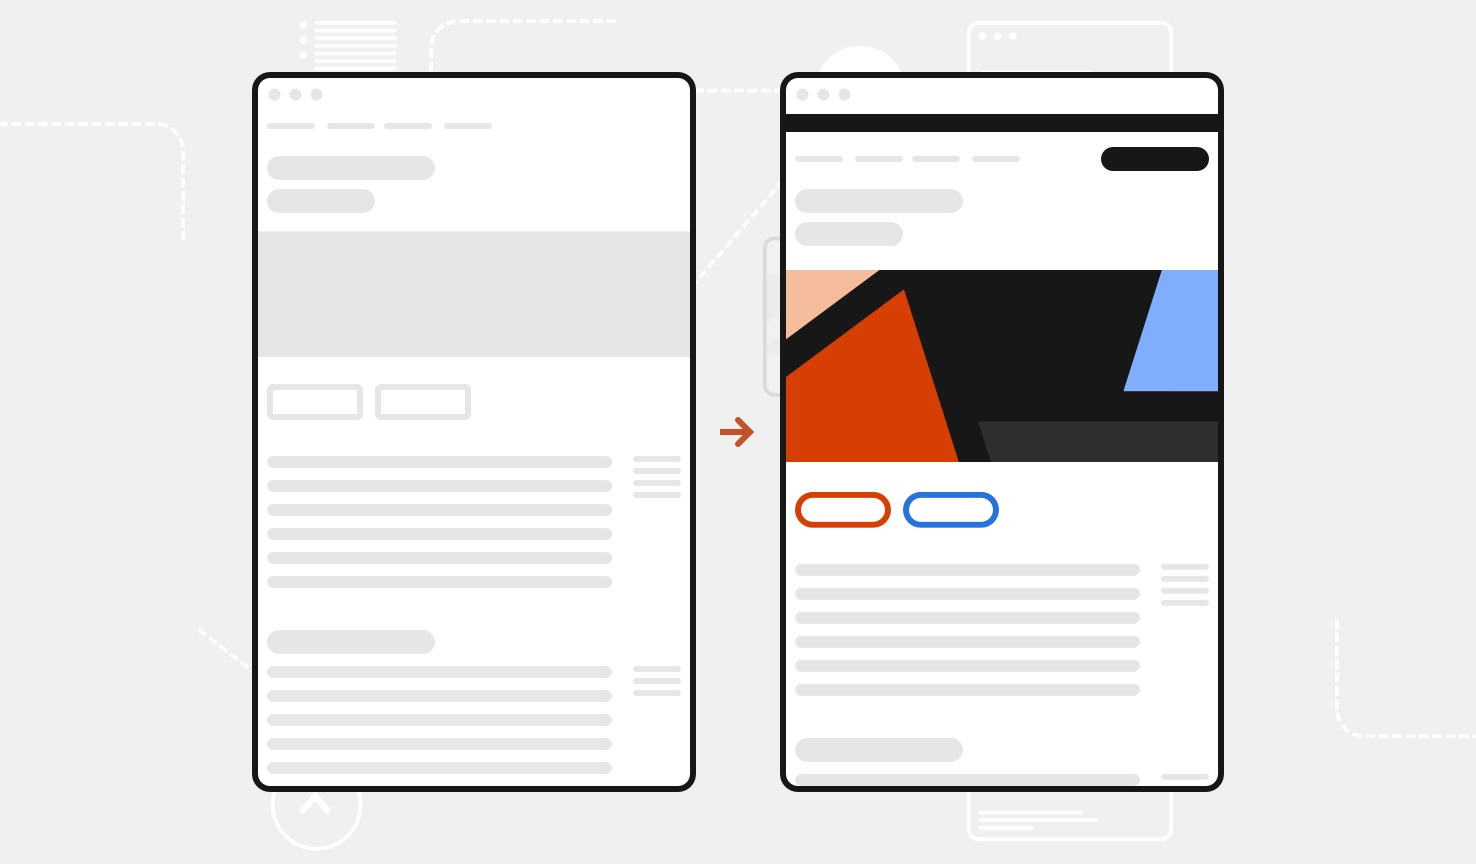 Side by side illustrations show before-and-after examples of a web page. One has the original page and the other shows that page with just a few design system components added.